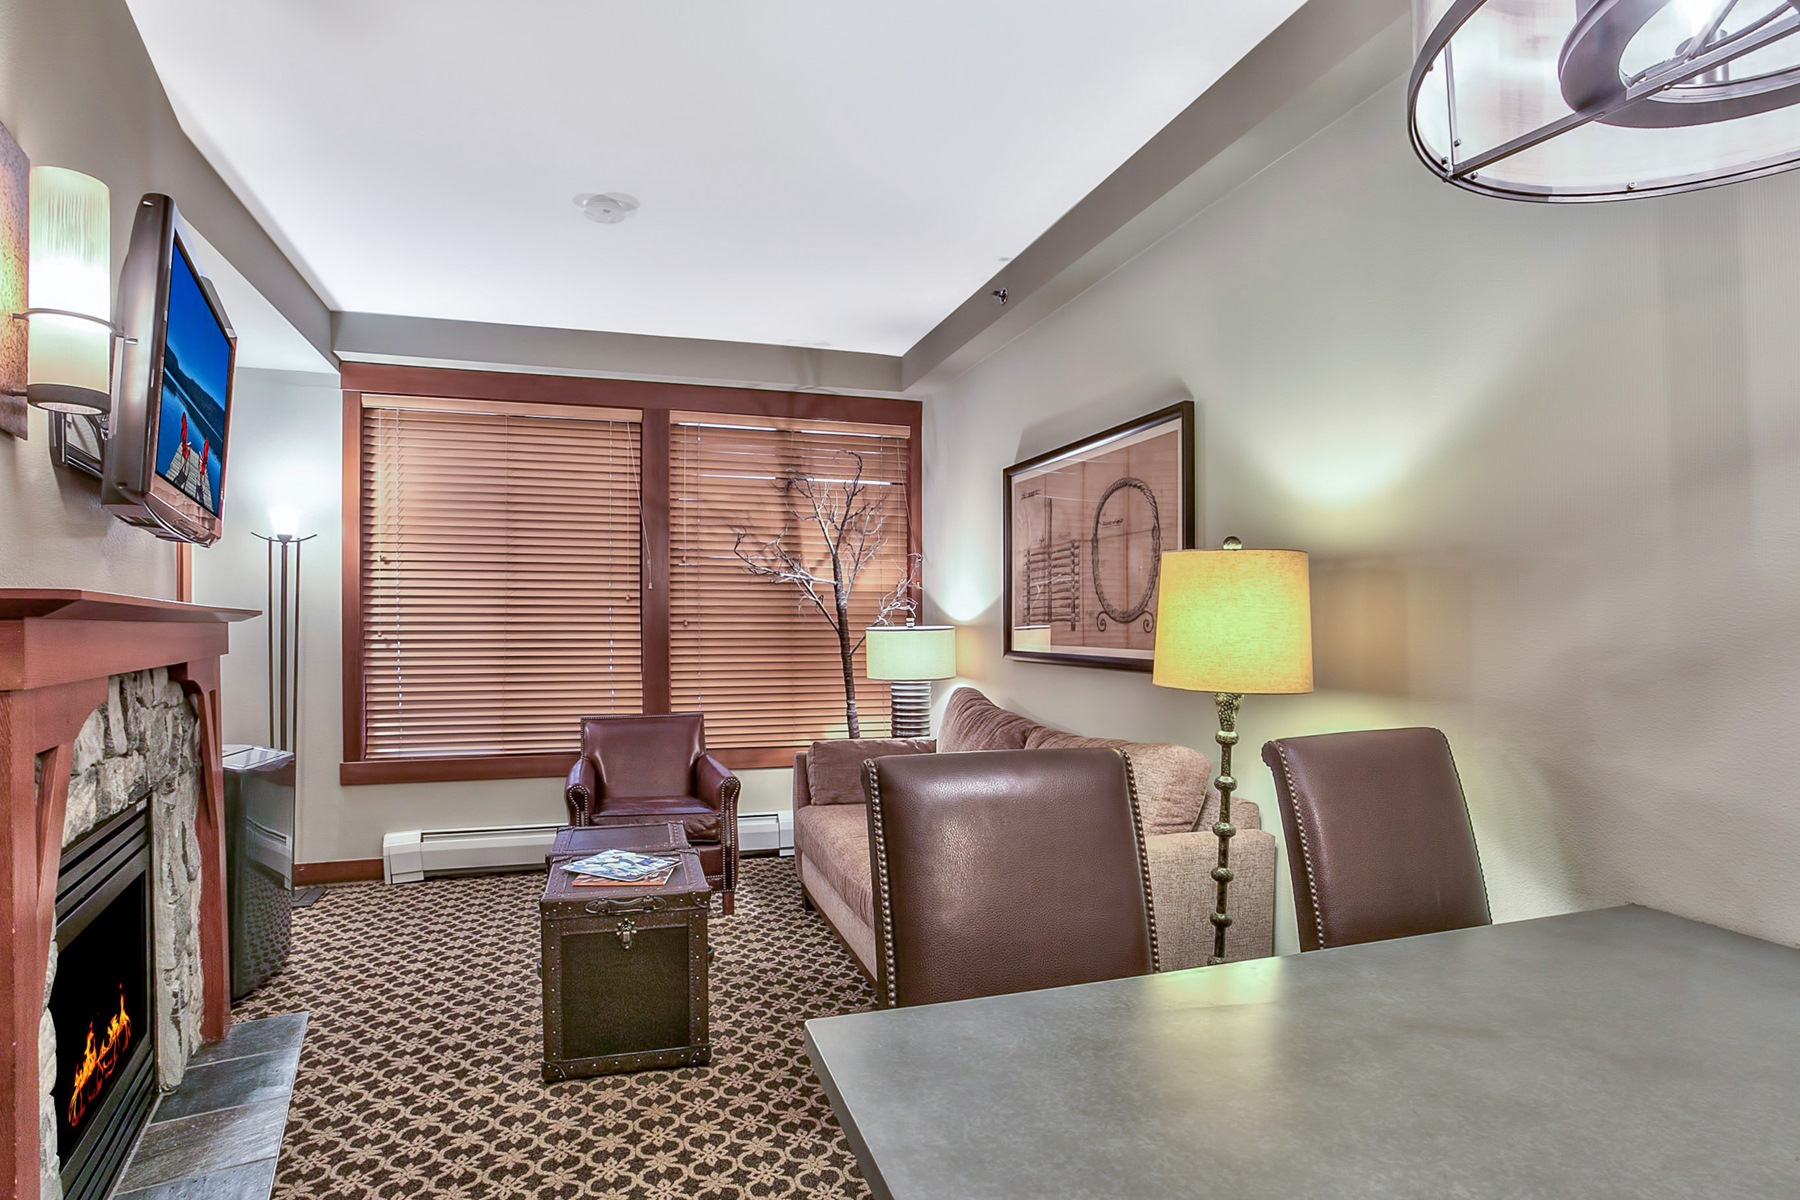 Additional photo for property listing at 1750 Village East Road # 5-220  Olympic Valley, California 96146 United States